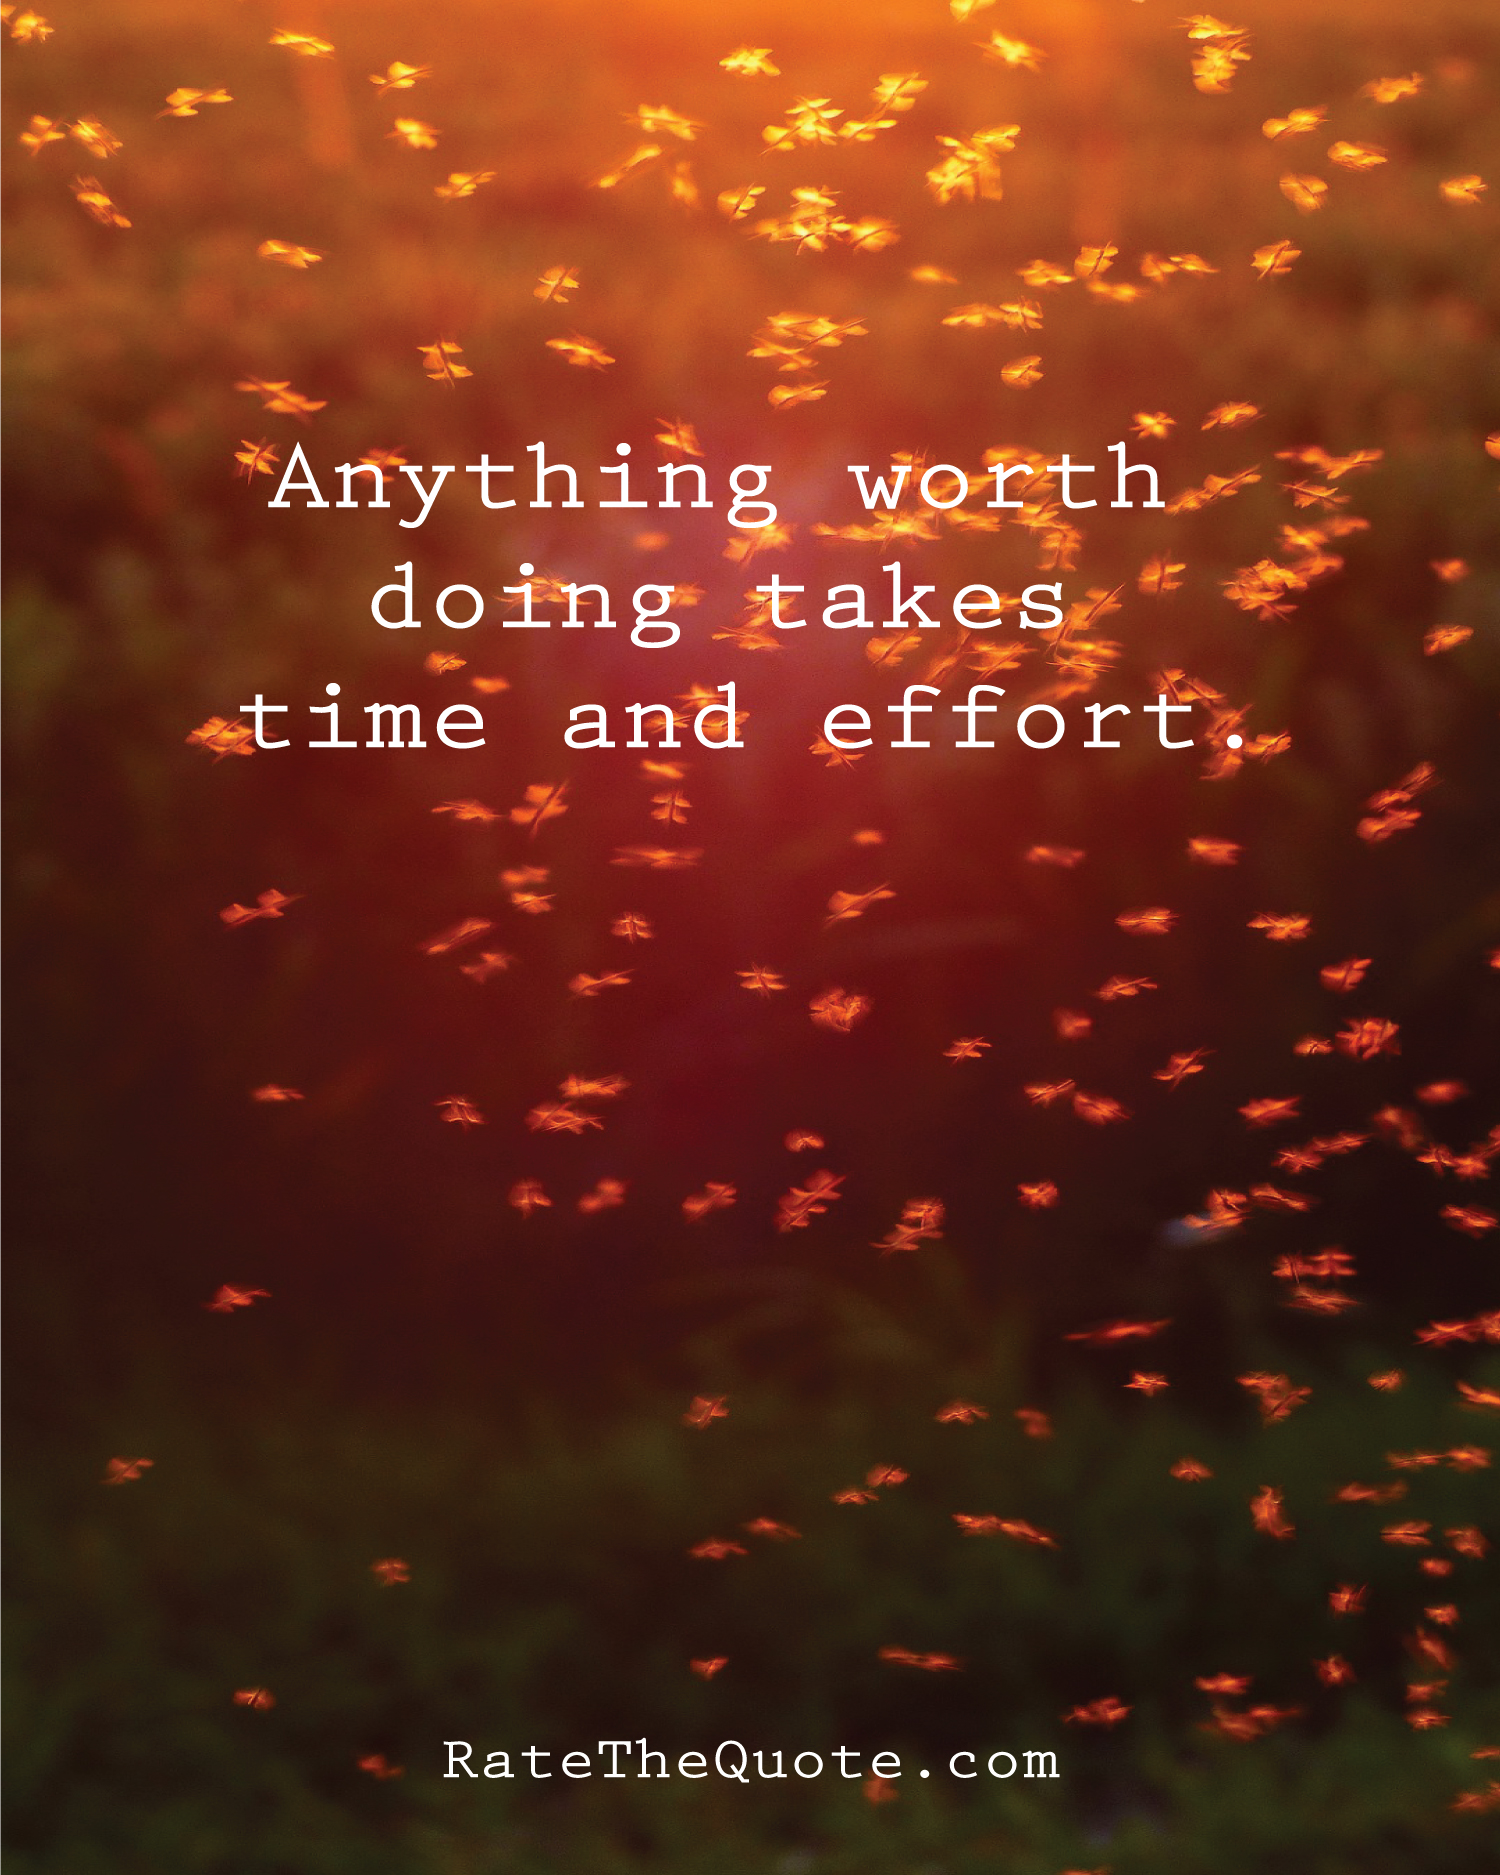 Anything worth doing takes time and effort.